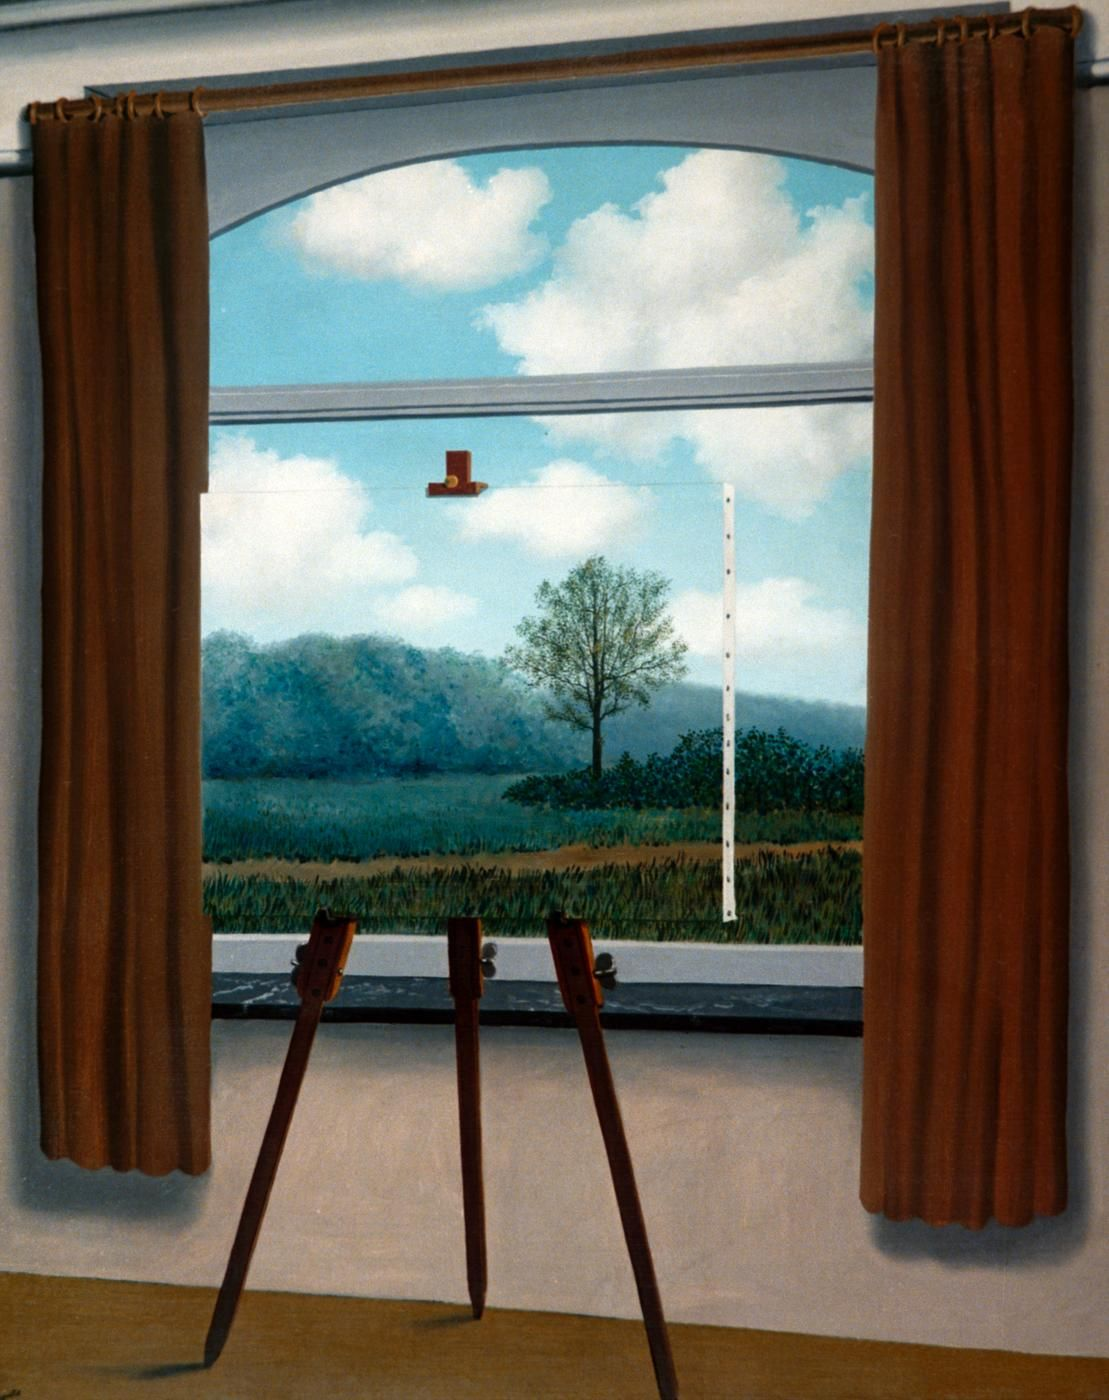 The Human Condition(1933) - Rene-Magritte